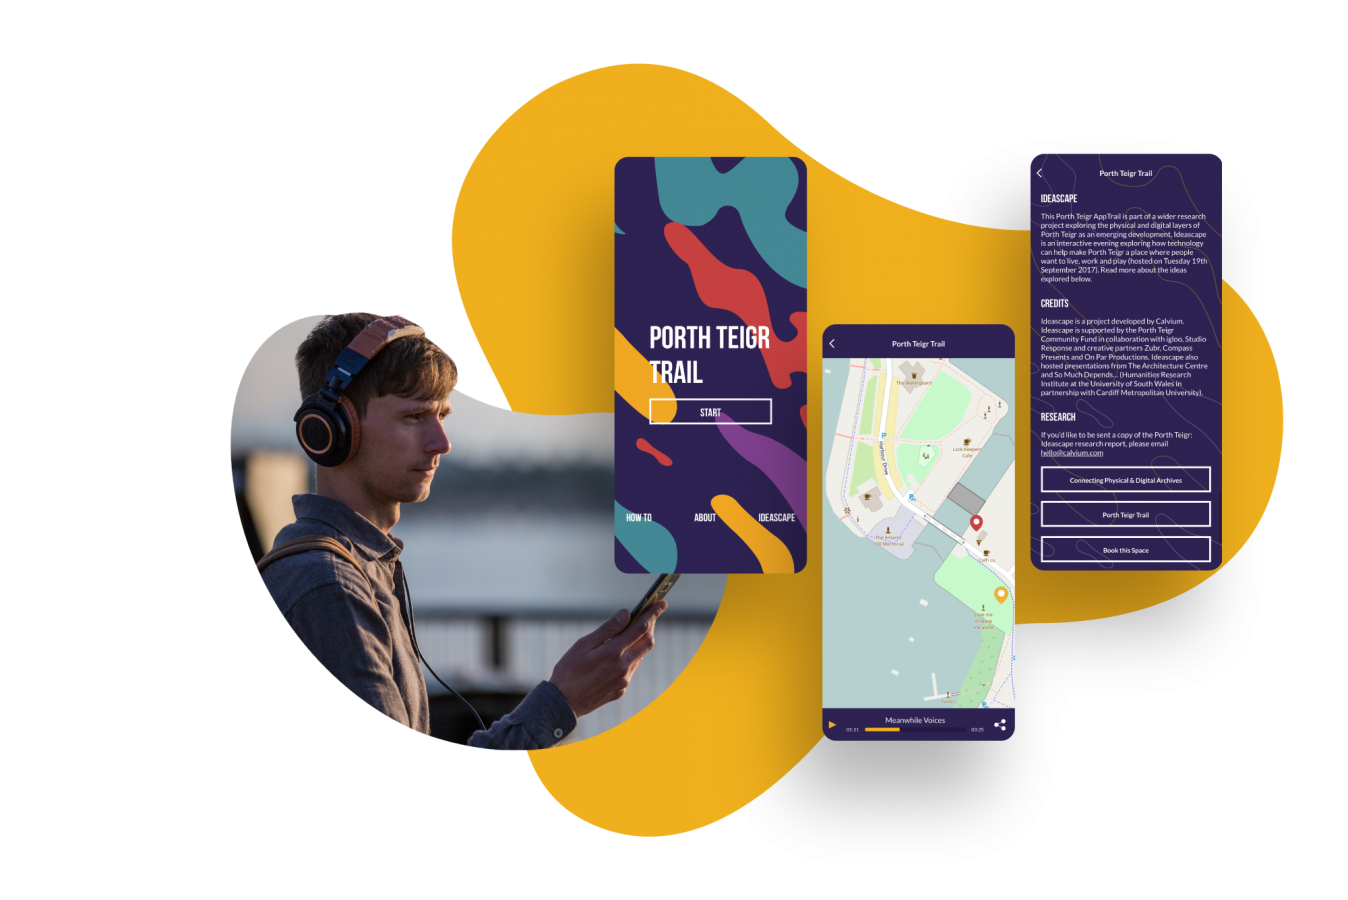 A white man with brown hair wearing big headphones holds his phone as he listens to the audio guide on the Porth Teigr app. Next to this image are 3 screens from the trail app, with purple background and white text